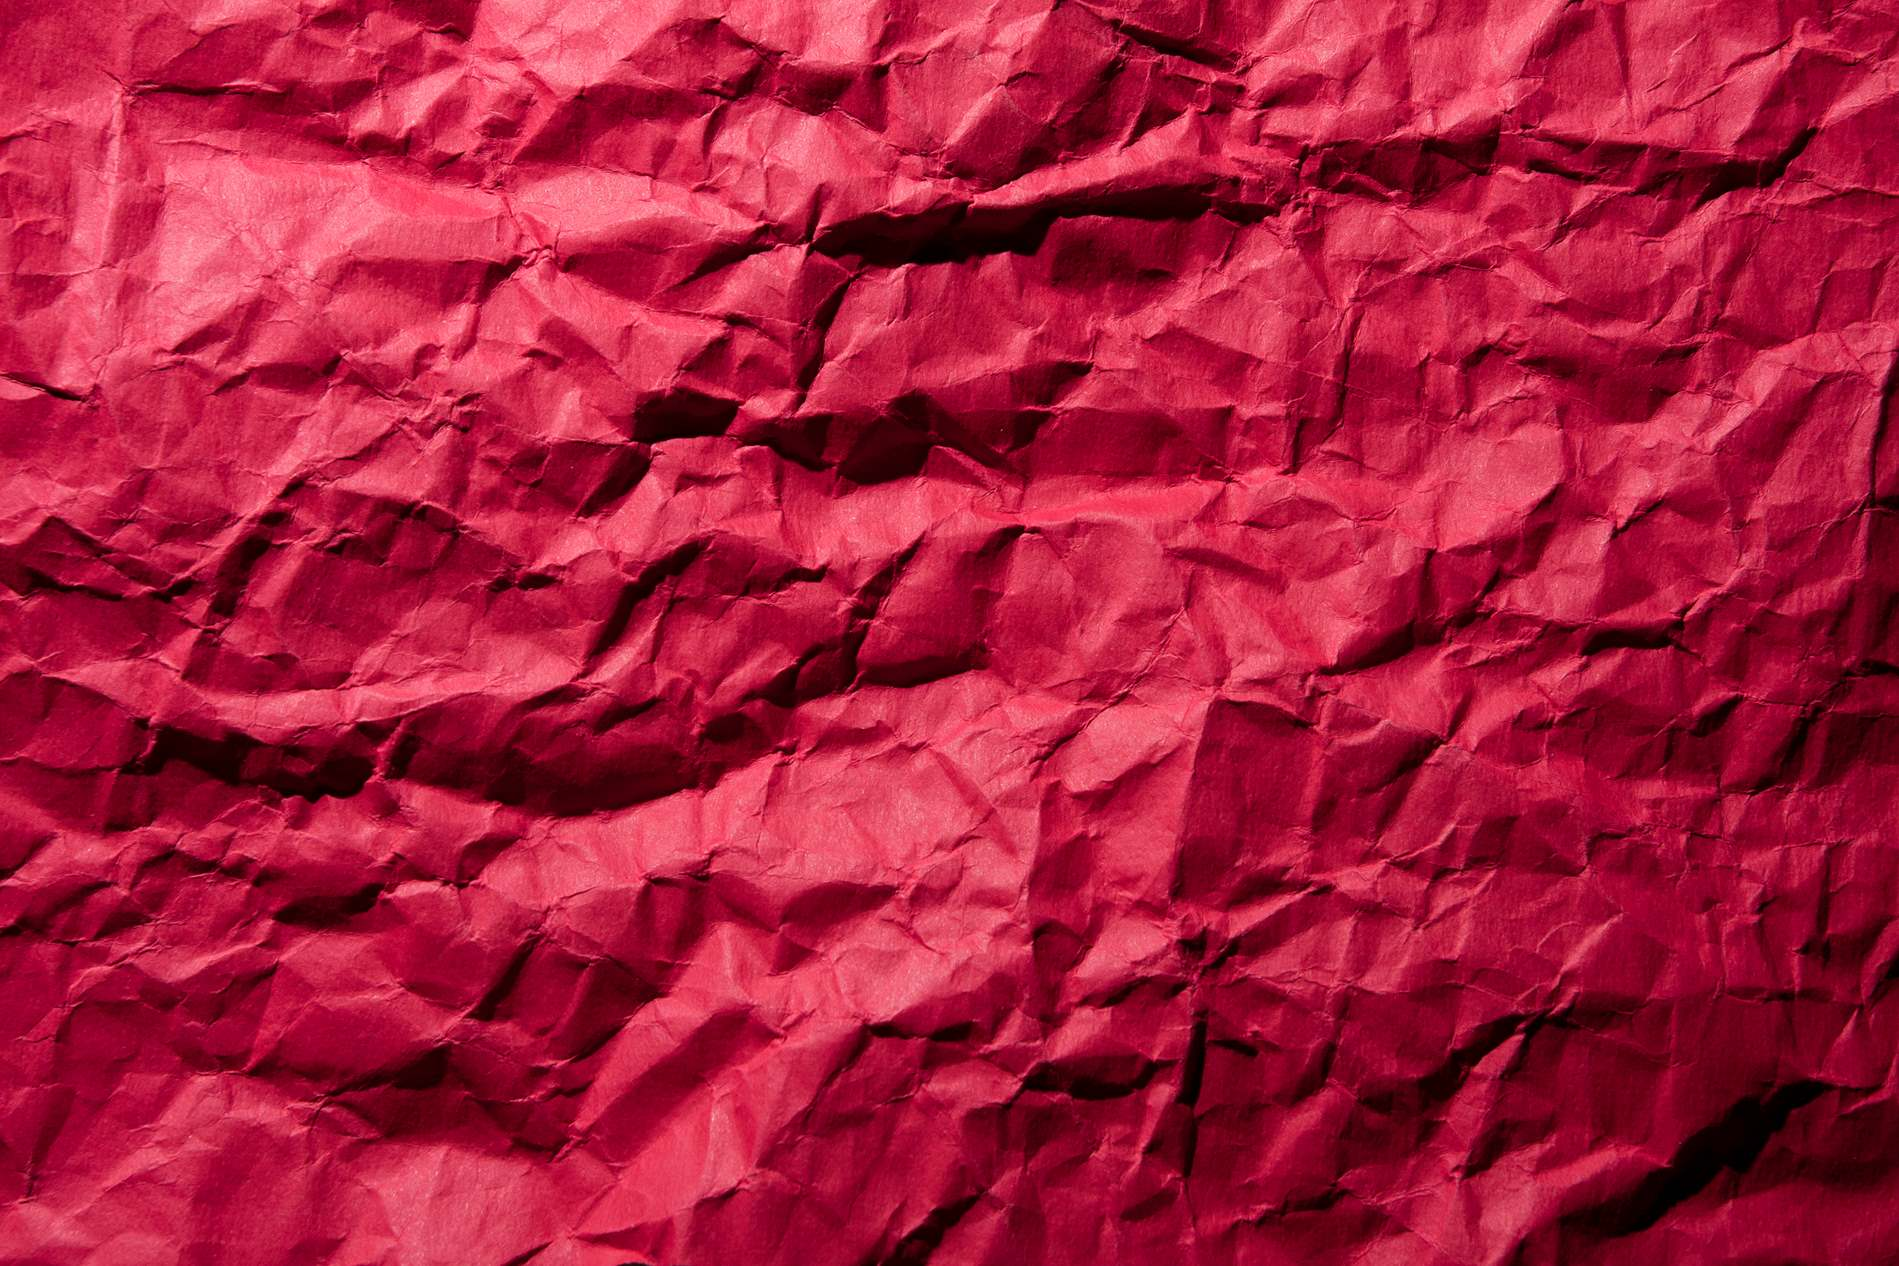 Crumpled Red Paper Texture - PhotoHDX